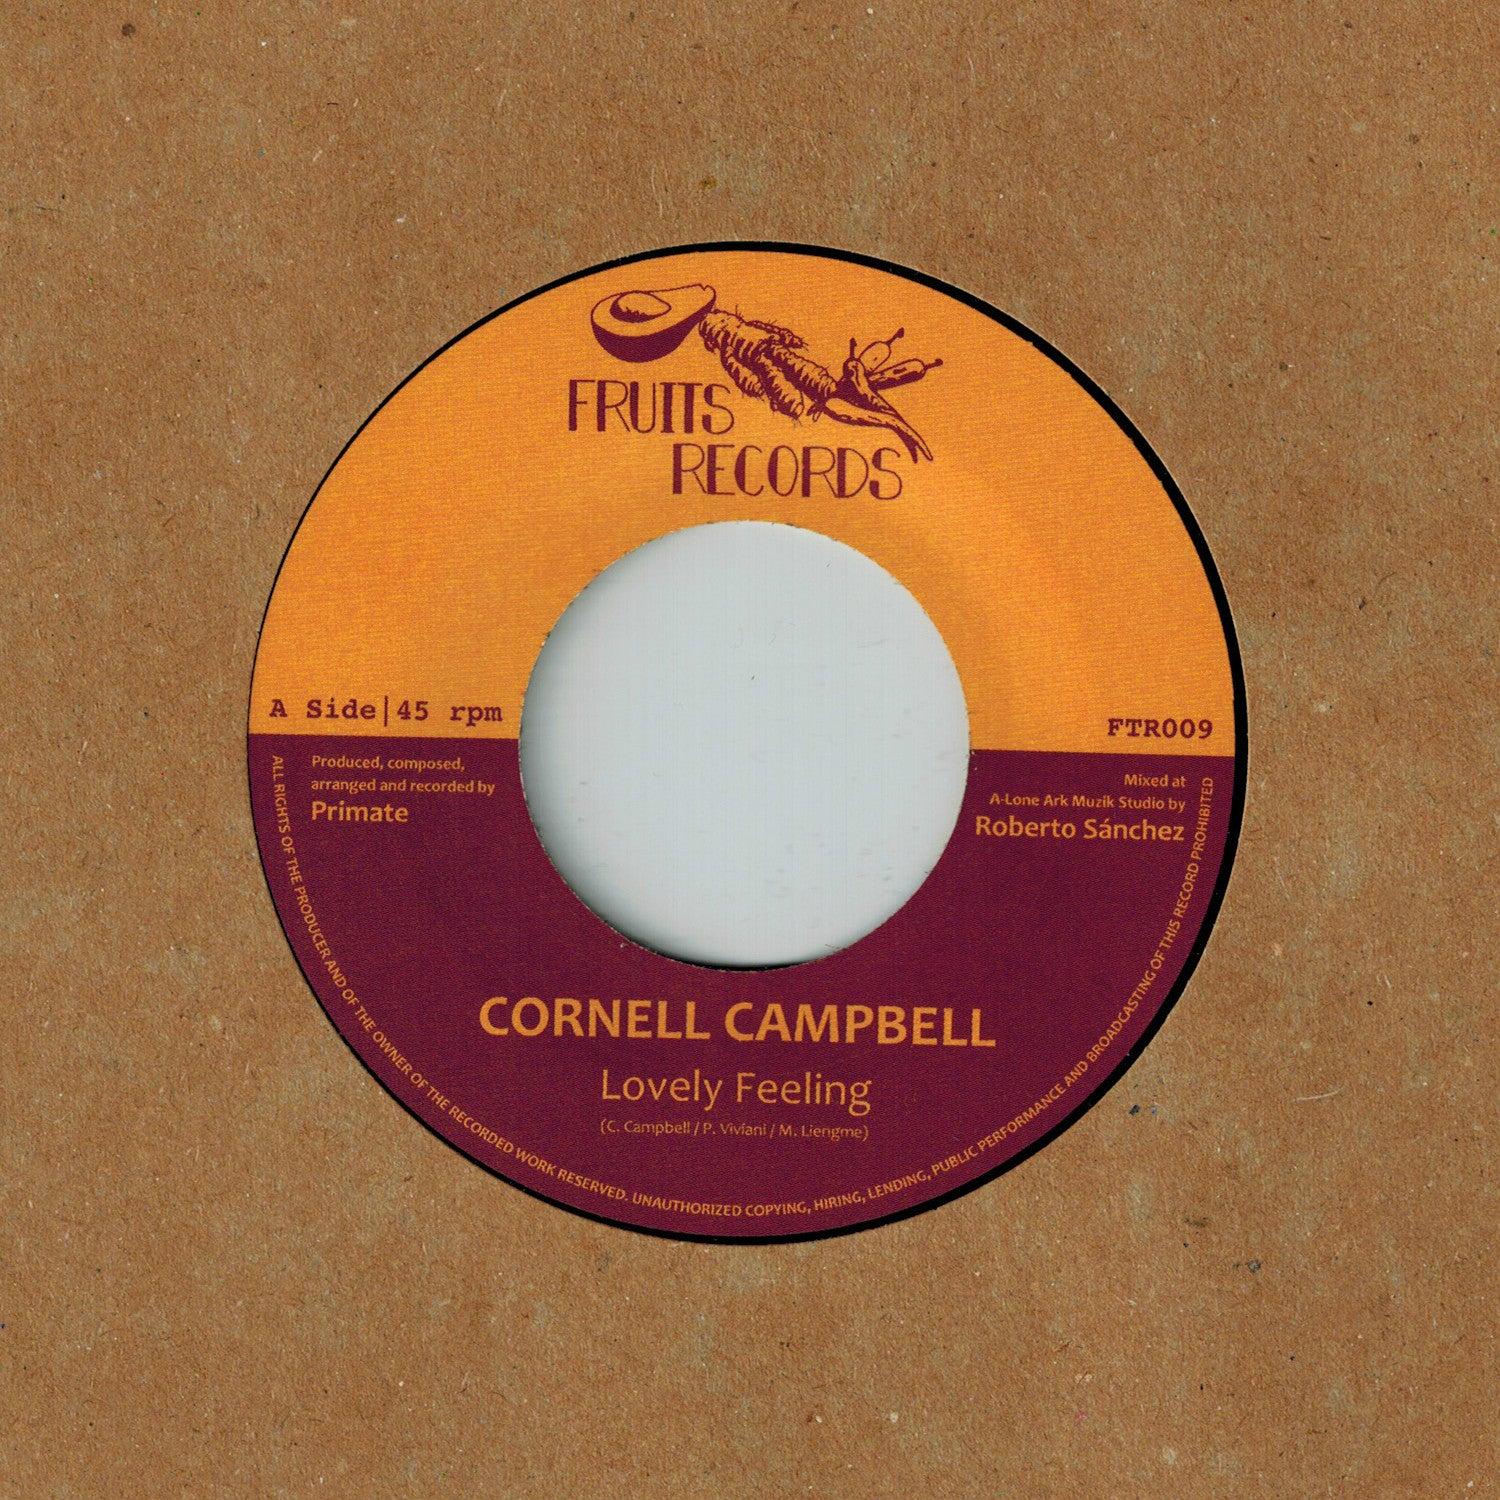 Cornell Campbell - Lovely Feeling